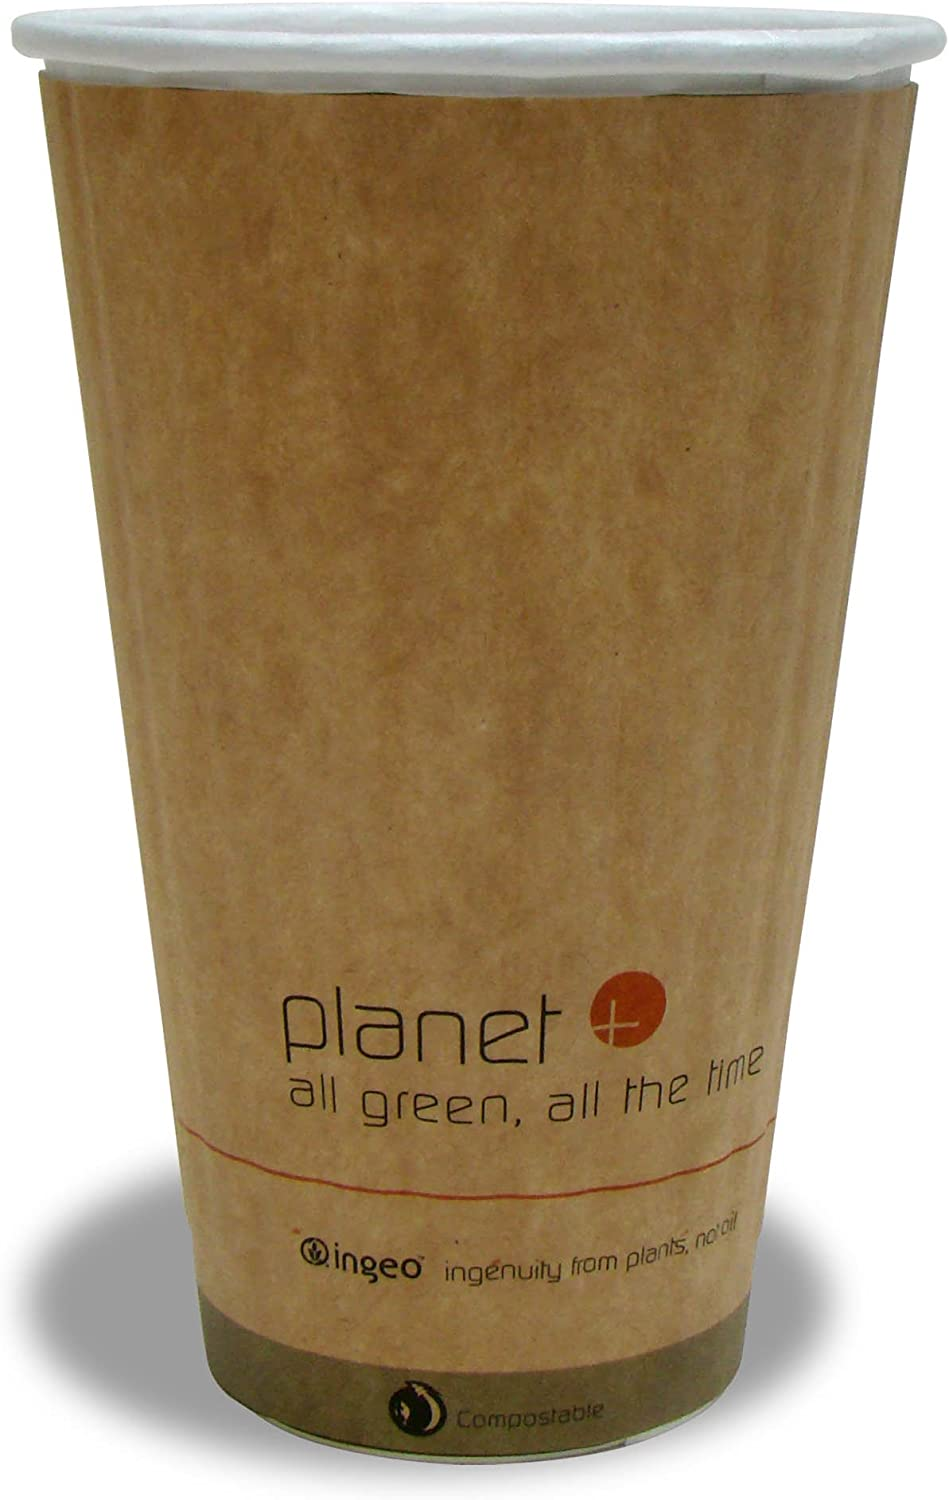 Planet+ 100% Compostable PLA Laminated Double-Wall Insulated Hot Cup, 16-Ounce, 600-Count Case